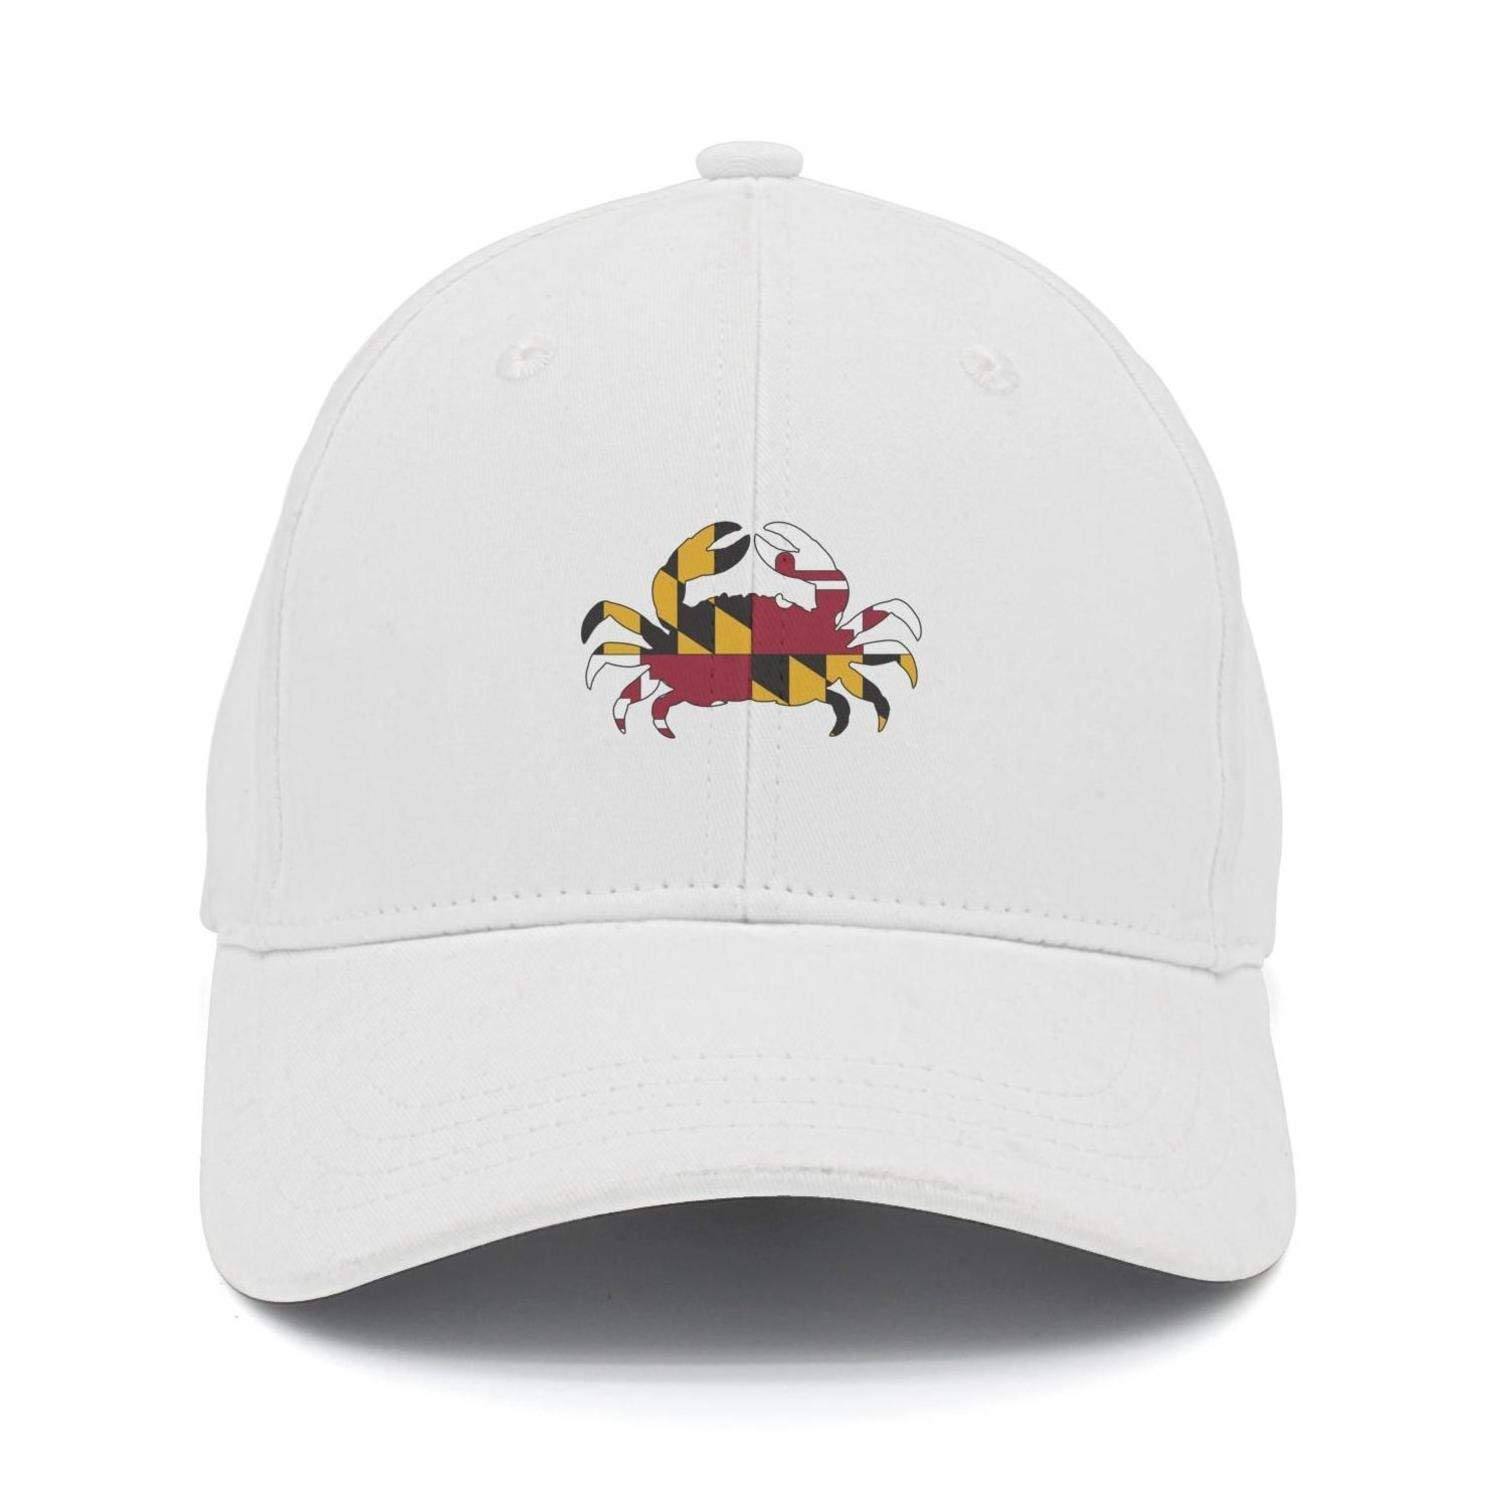 Cheap Maryland Hat, find Maryland Hat deals on line at